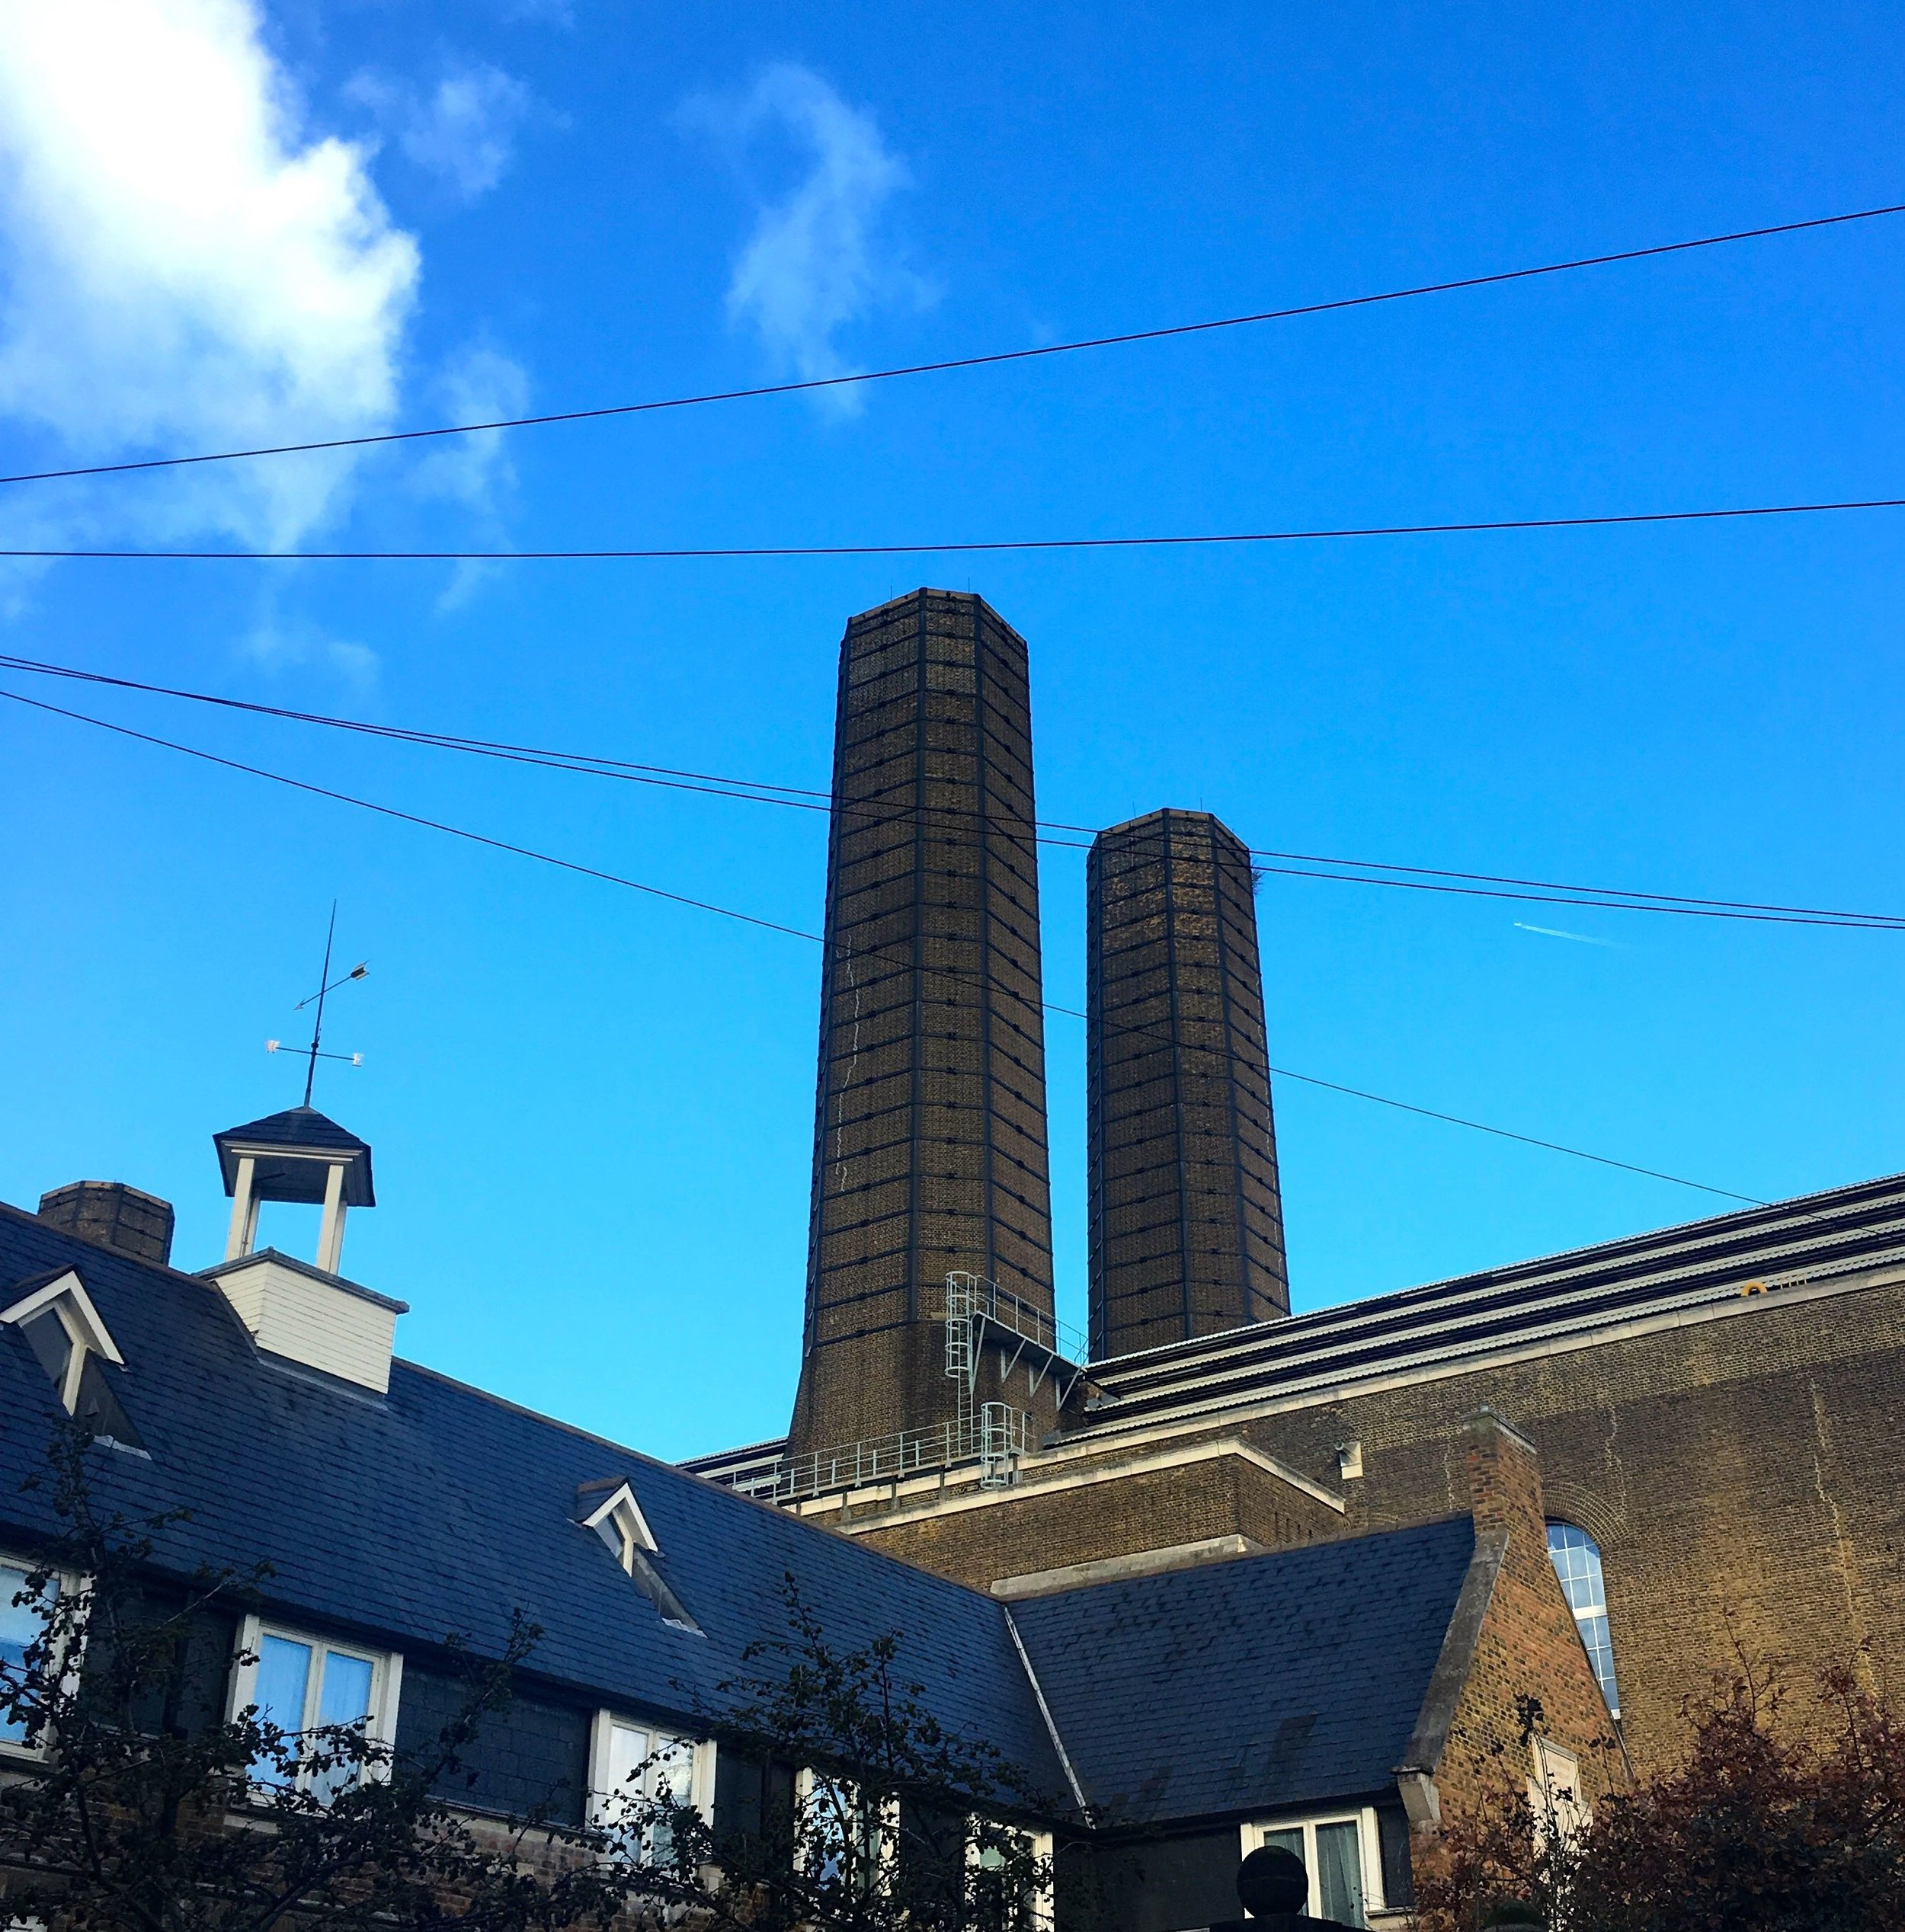 Greenwich power station and blue skies